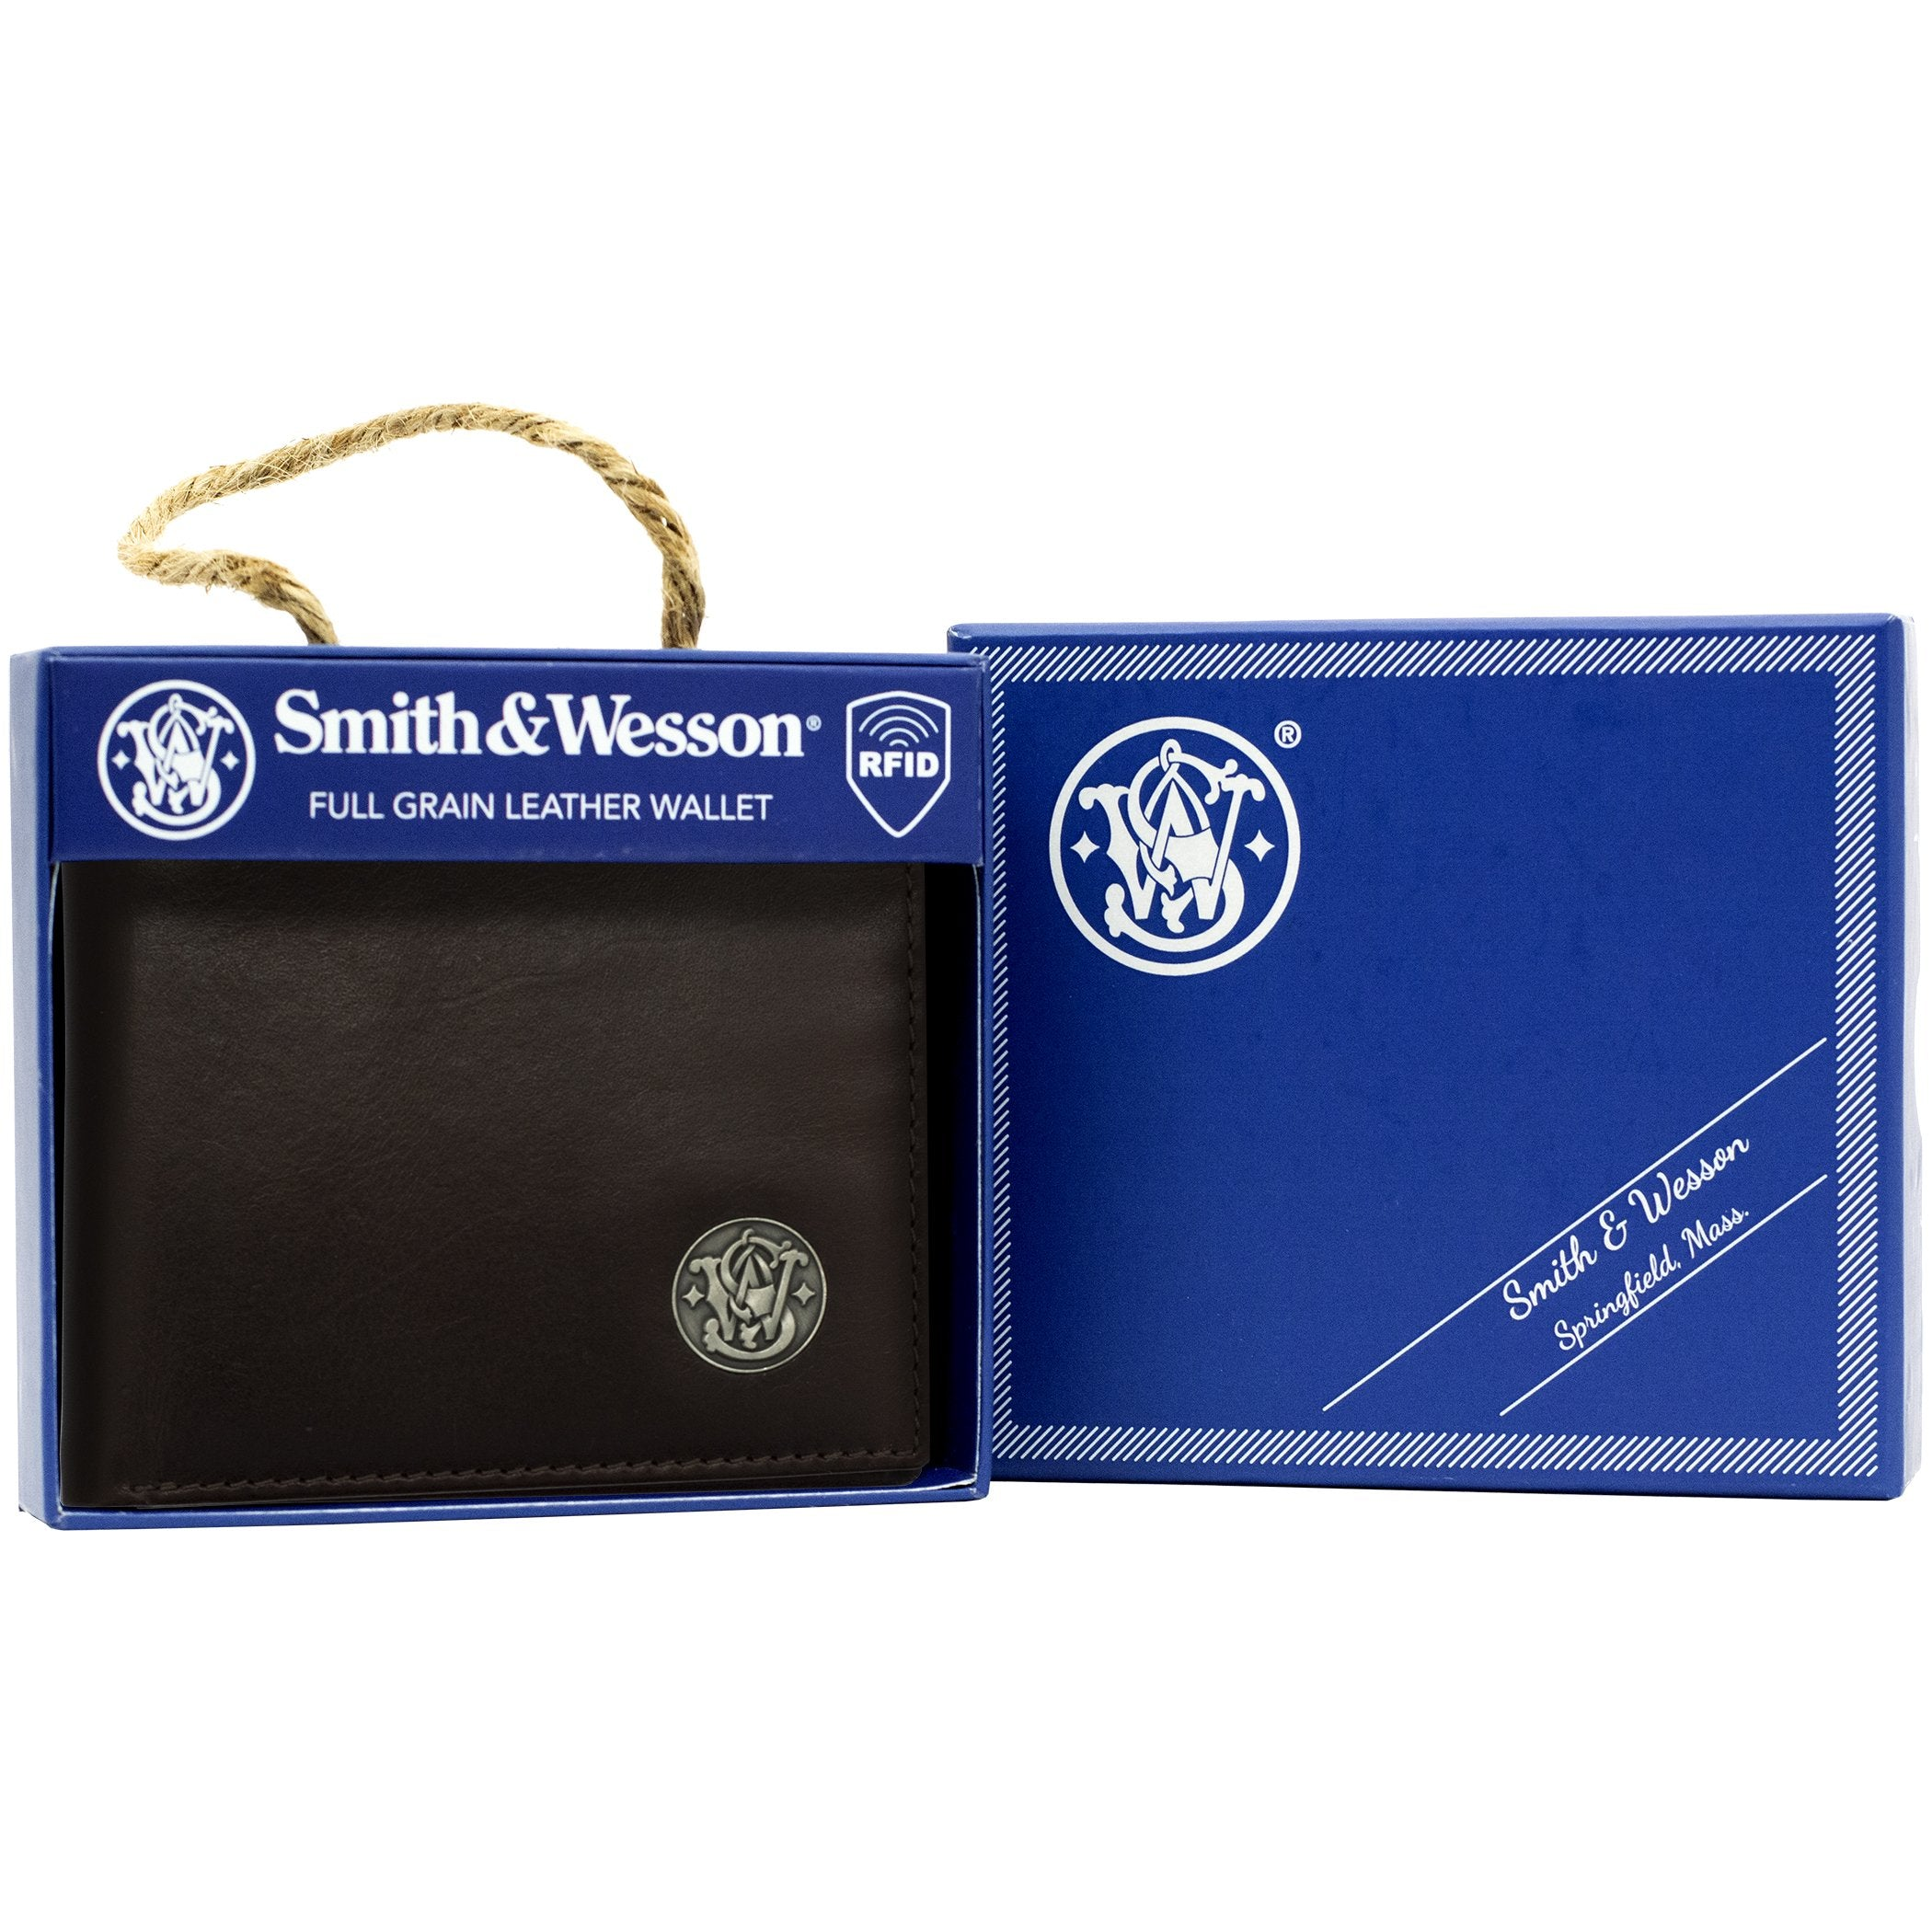 Smith & Wesson Front Pocket Wallet